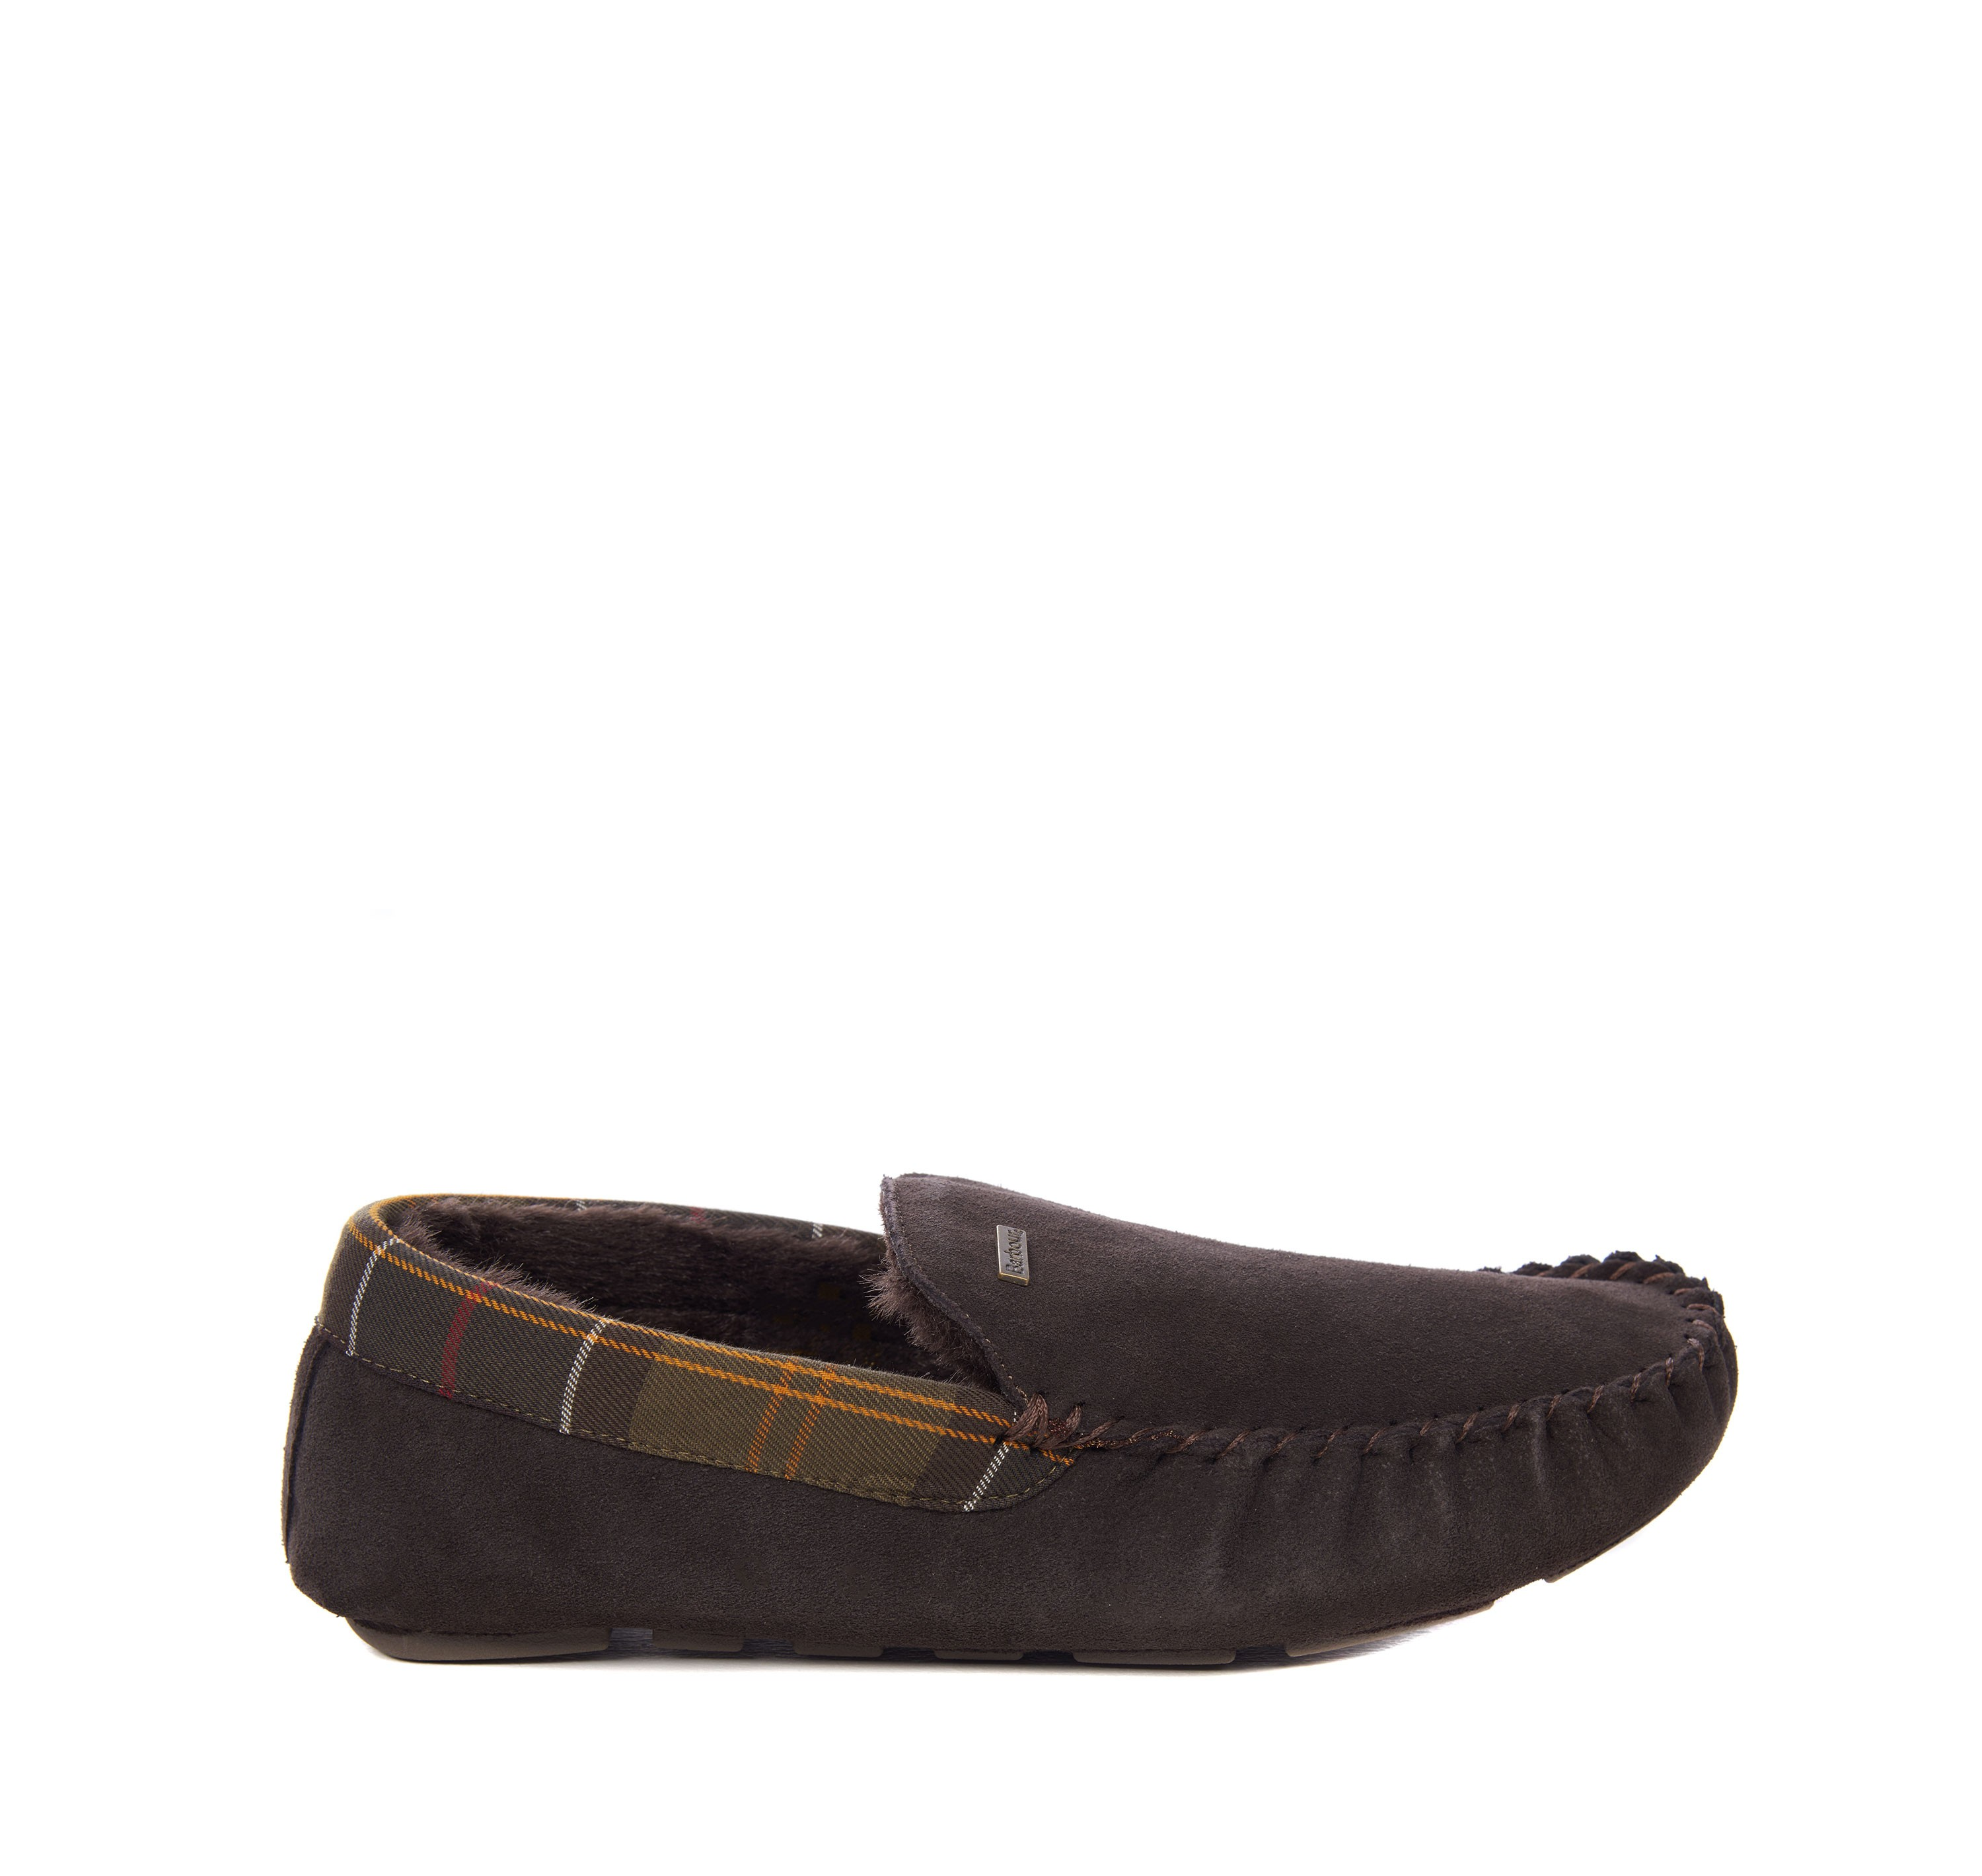 992f6e85bb25 Barbour Monty Moccasin Slipper Brown - Country Boots and Shoes ...